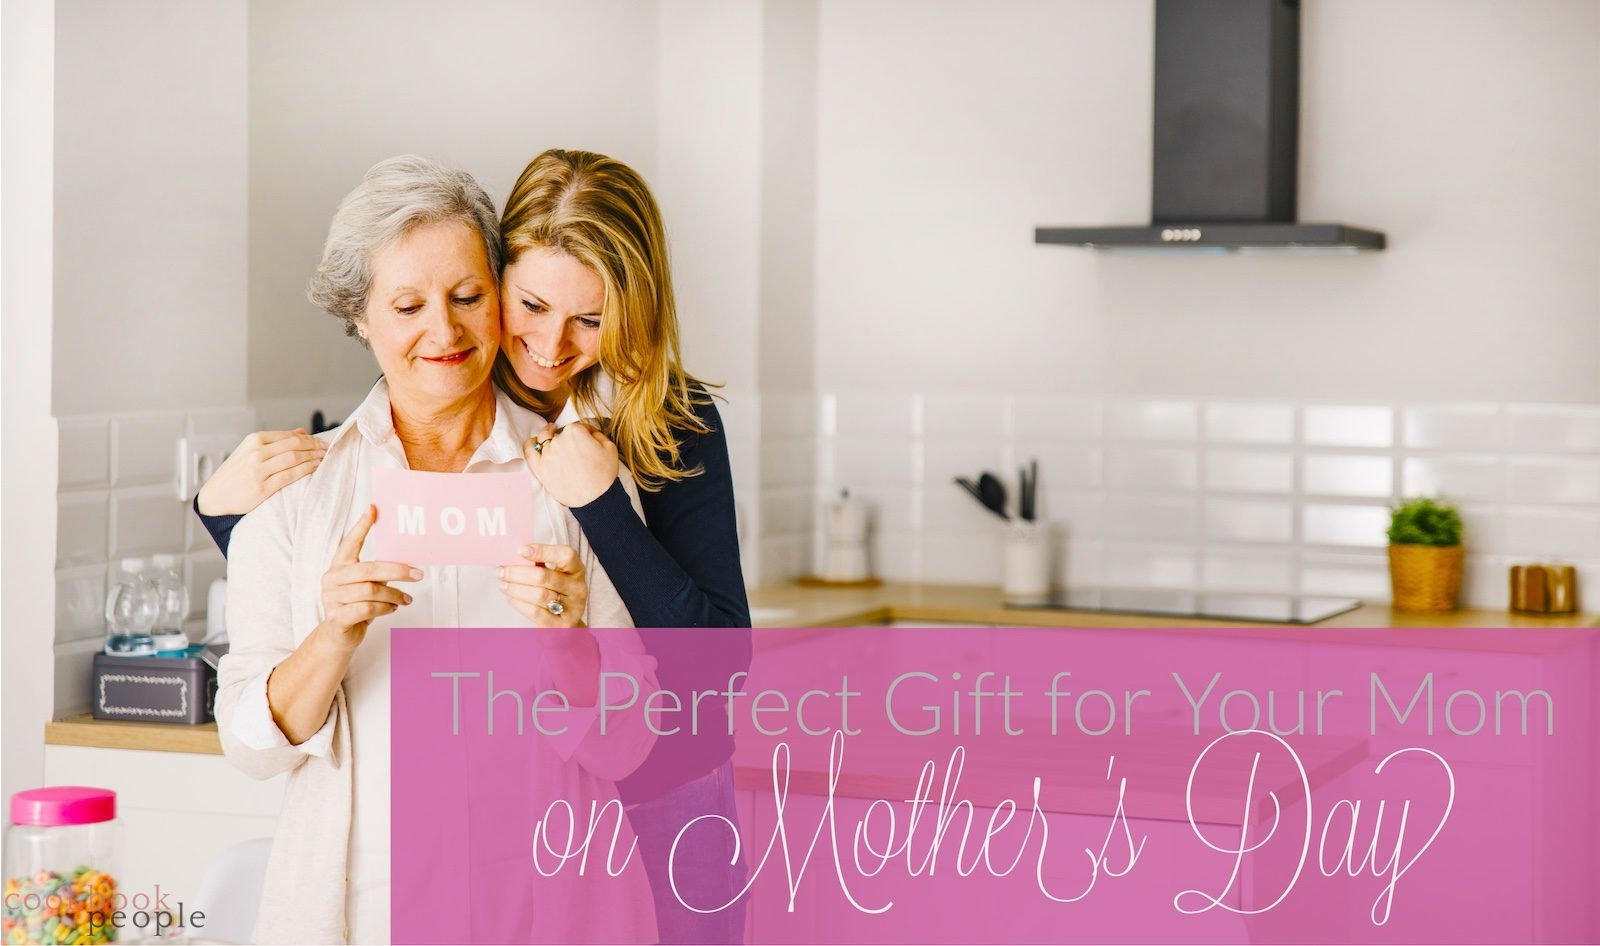 Daughter hugging Mom in kitchen overlaid with text: The Perfect Gift for Your Mom on Mother's Day